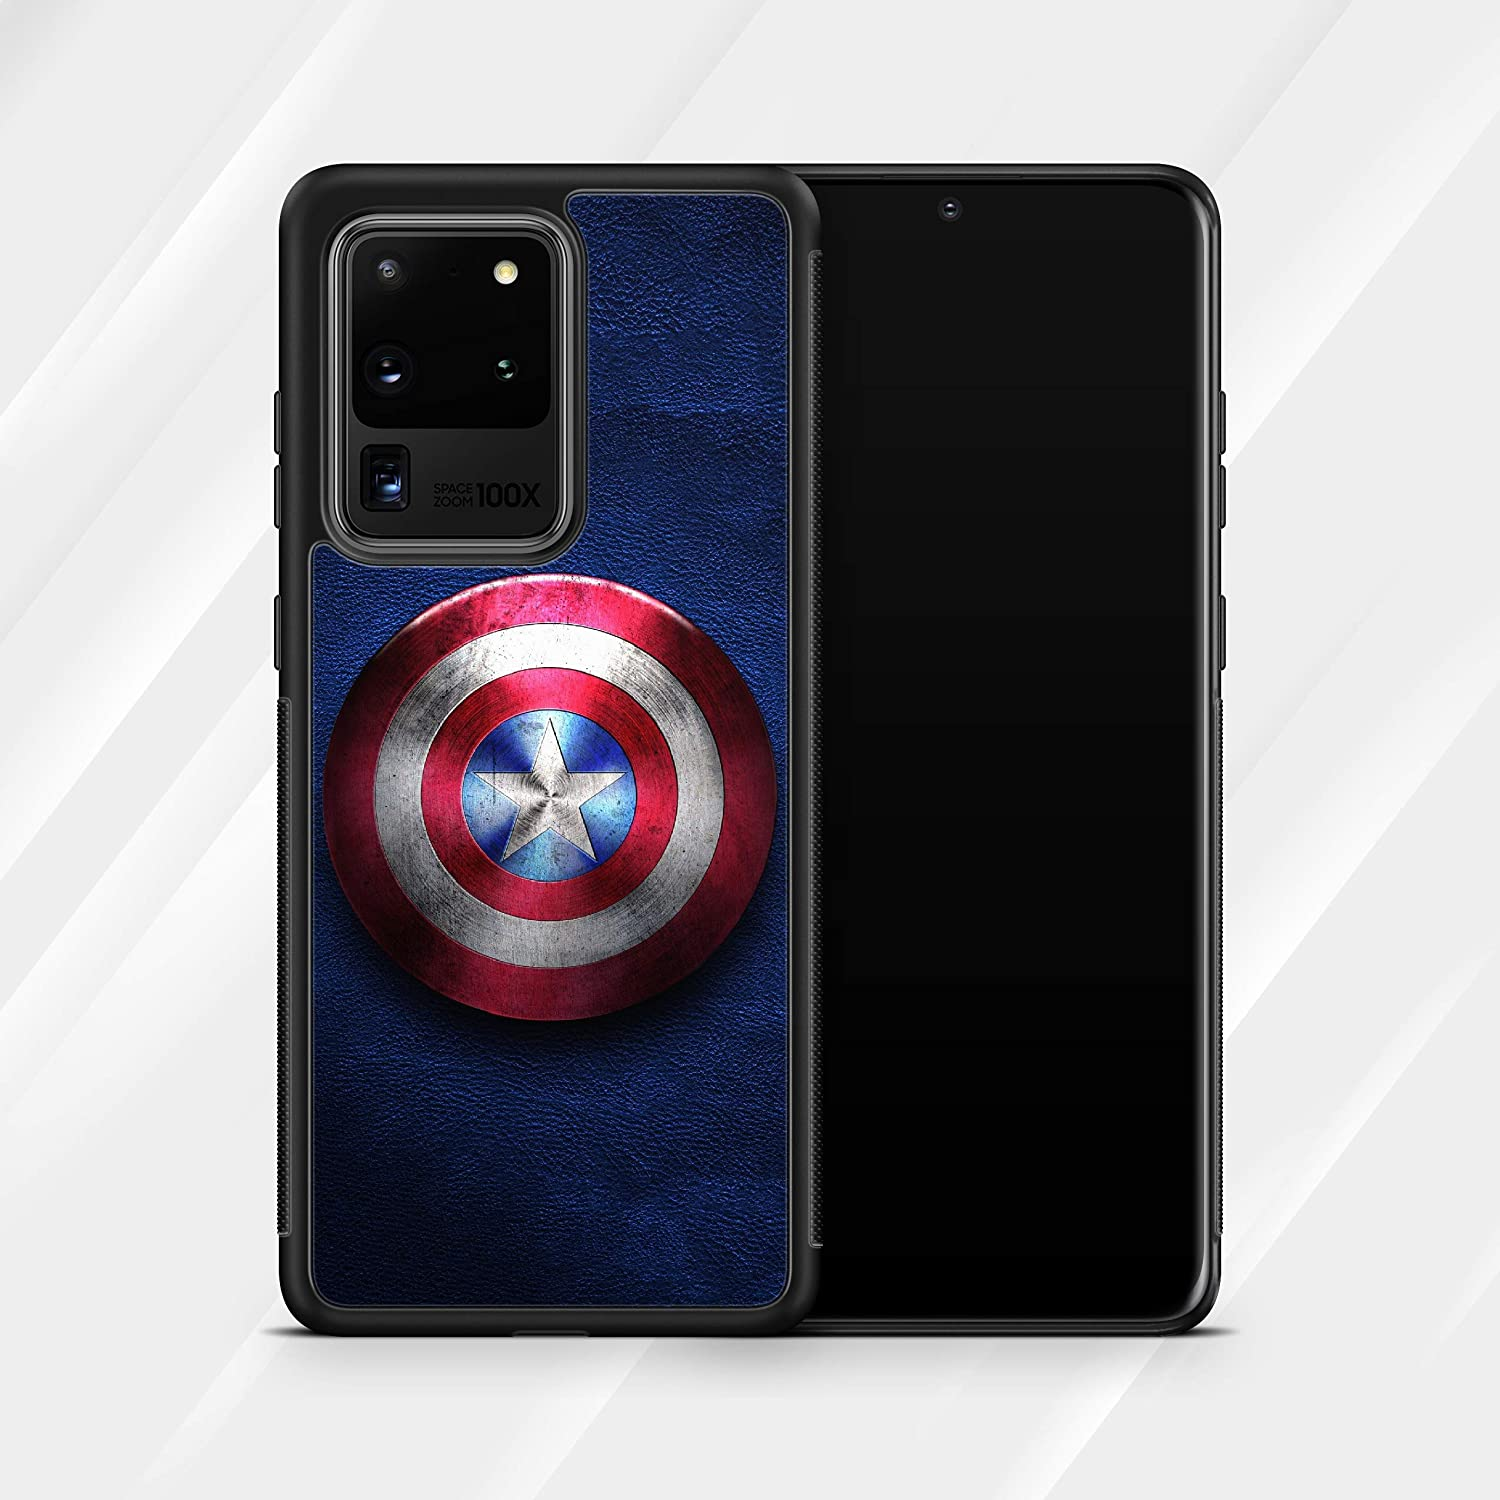 Inspired by Avengers Endgame Superhero Nippon regular agency S Galaxy case Samsung for Max 51% OFF